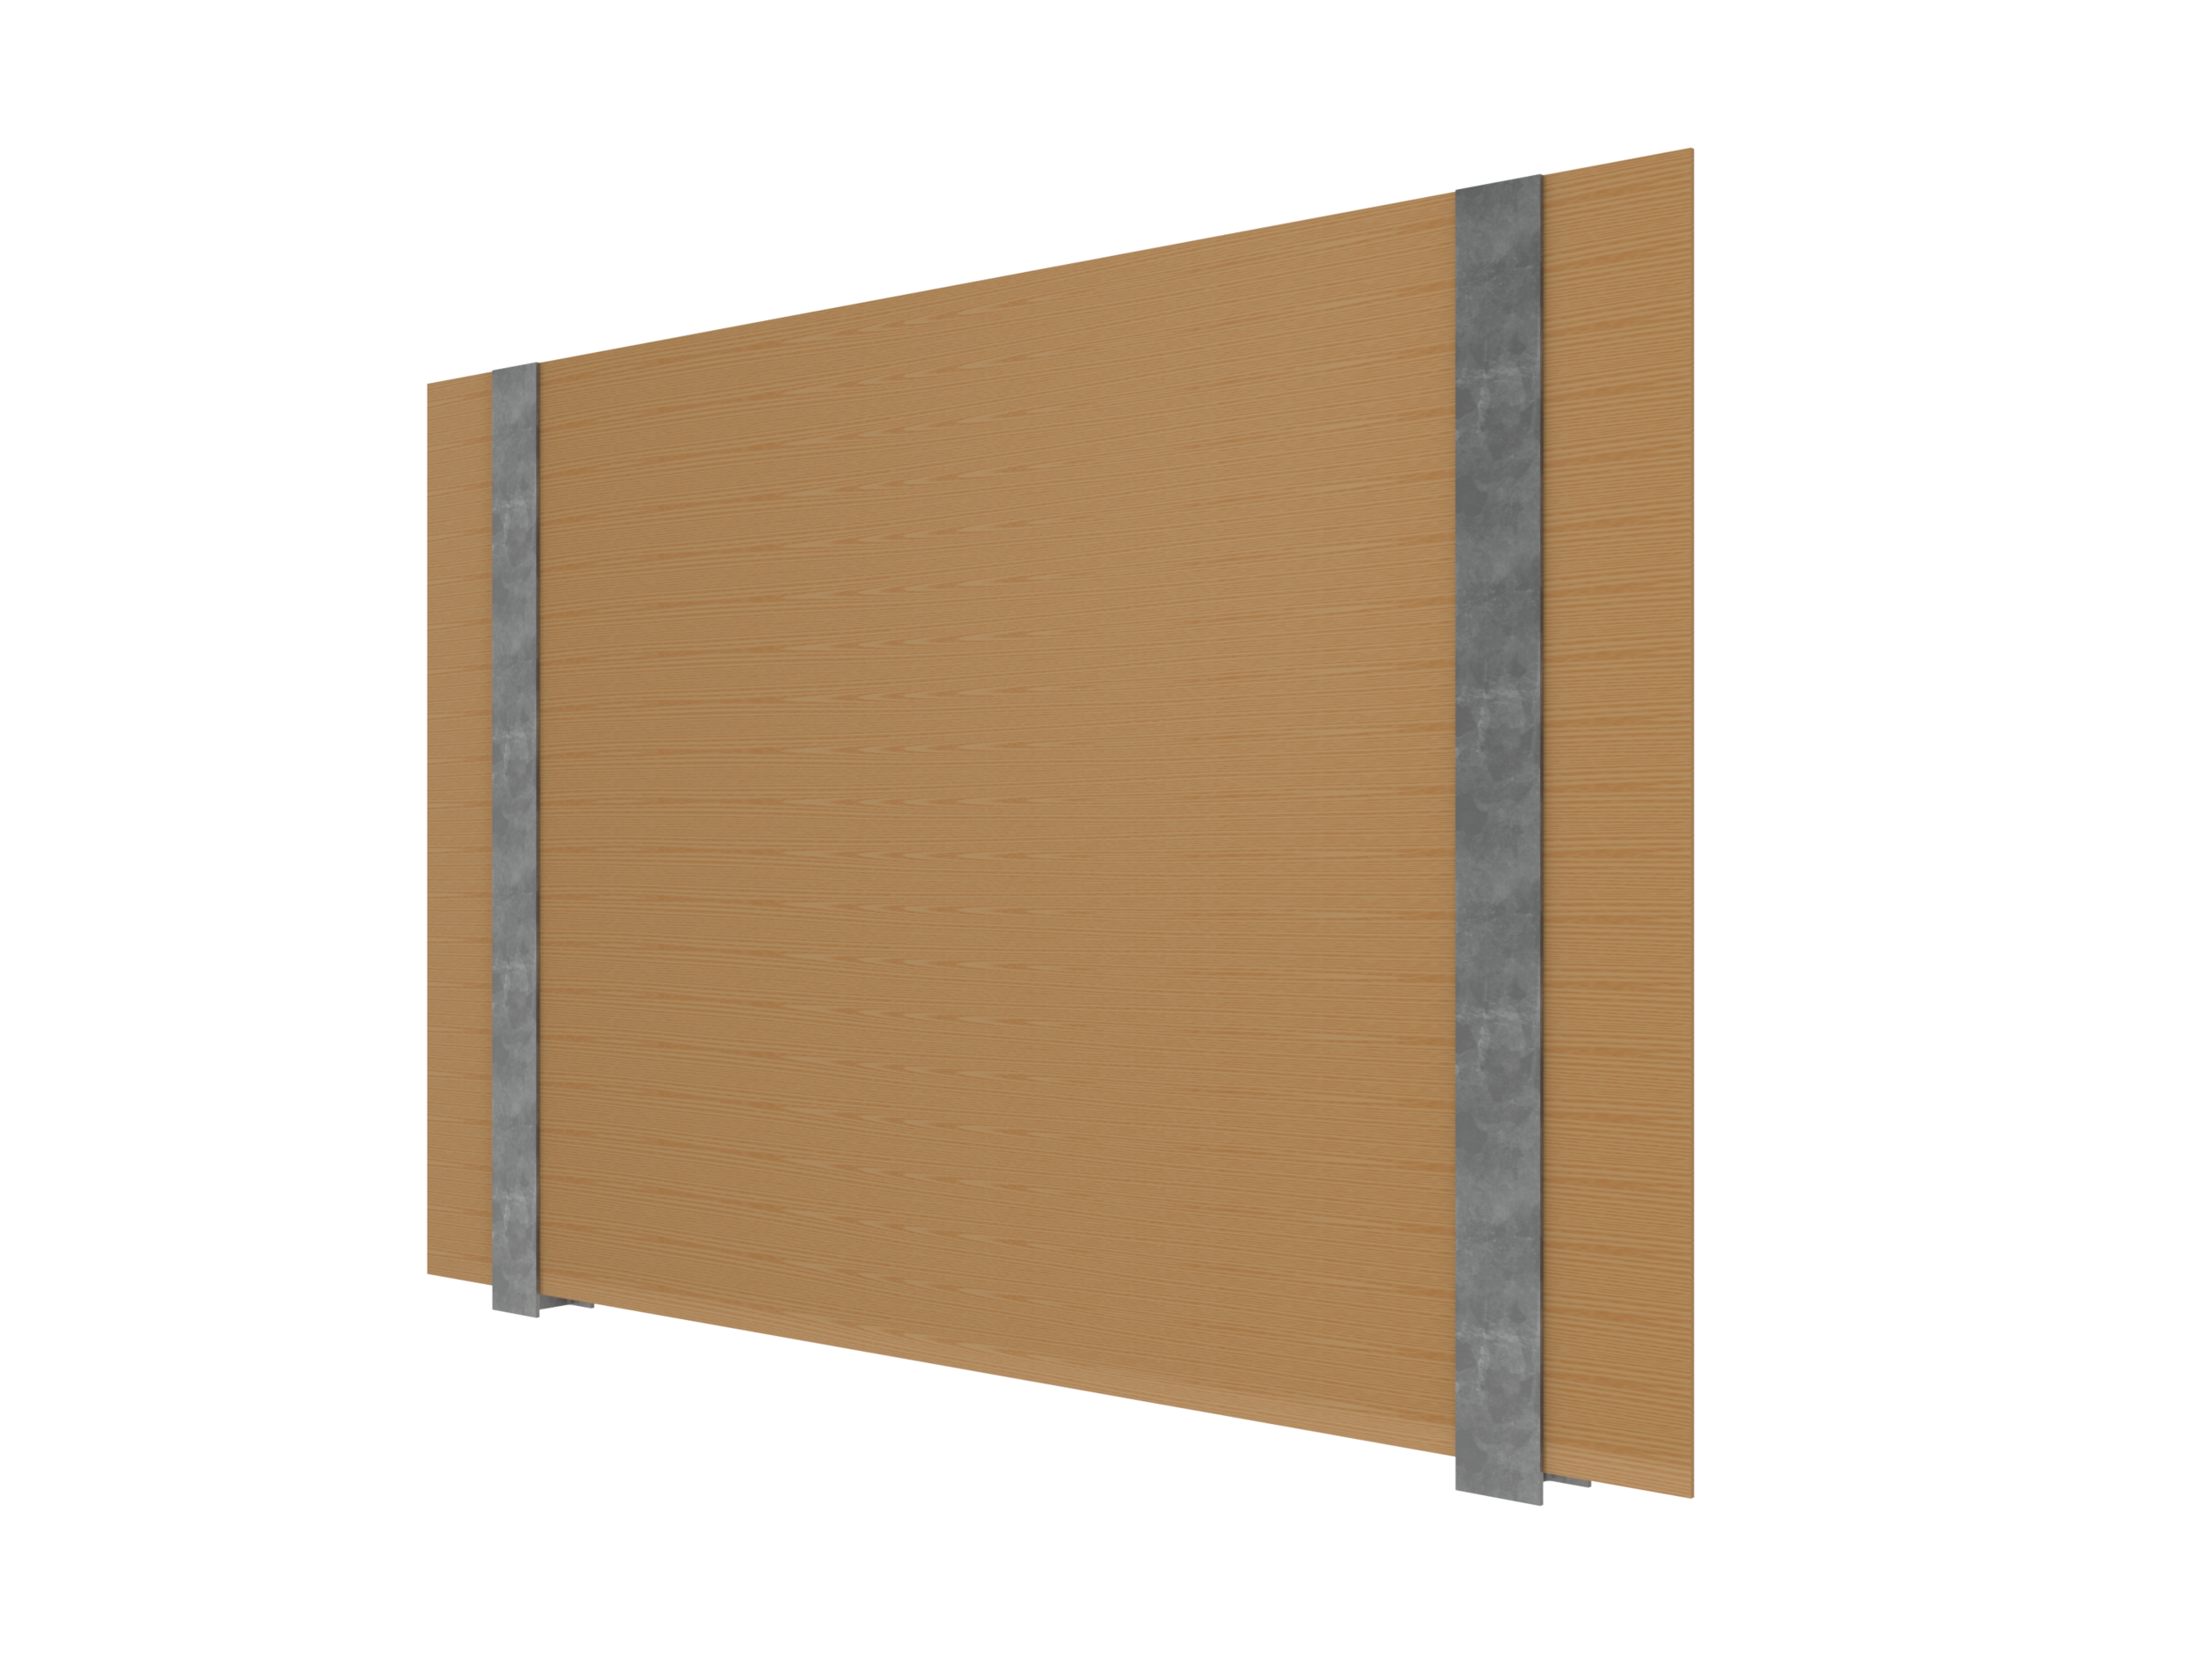 Acoustic Barrier Render 2.png